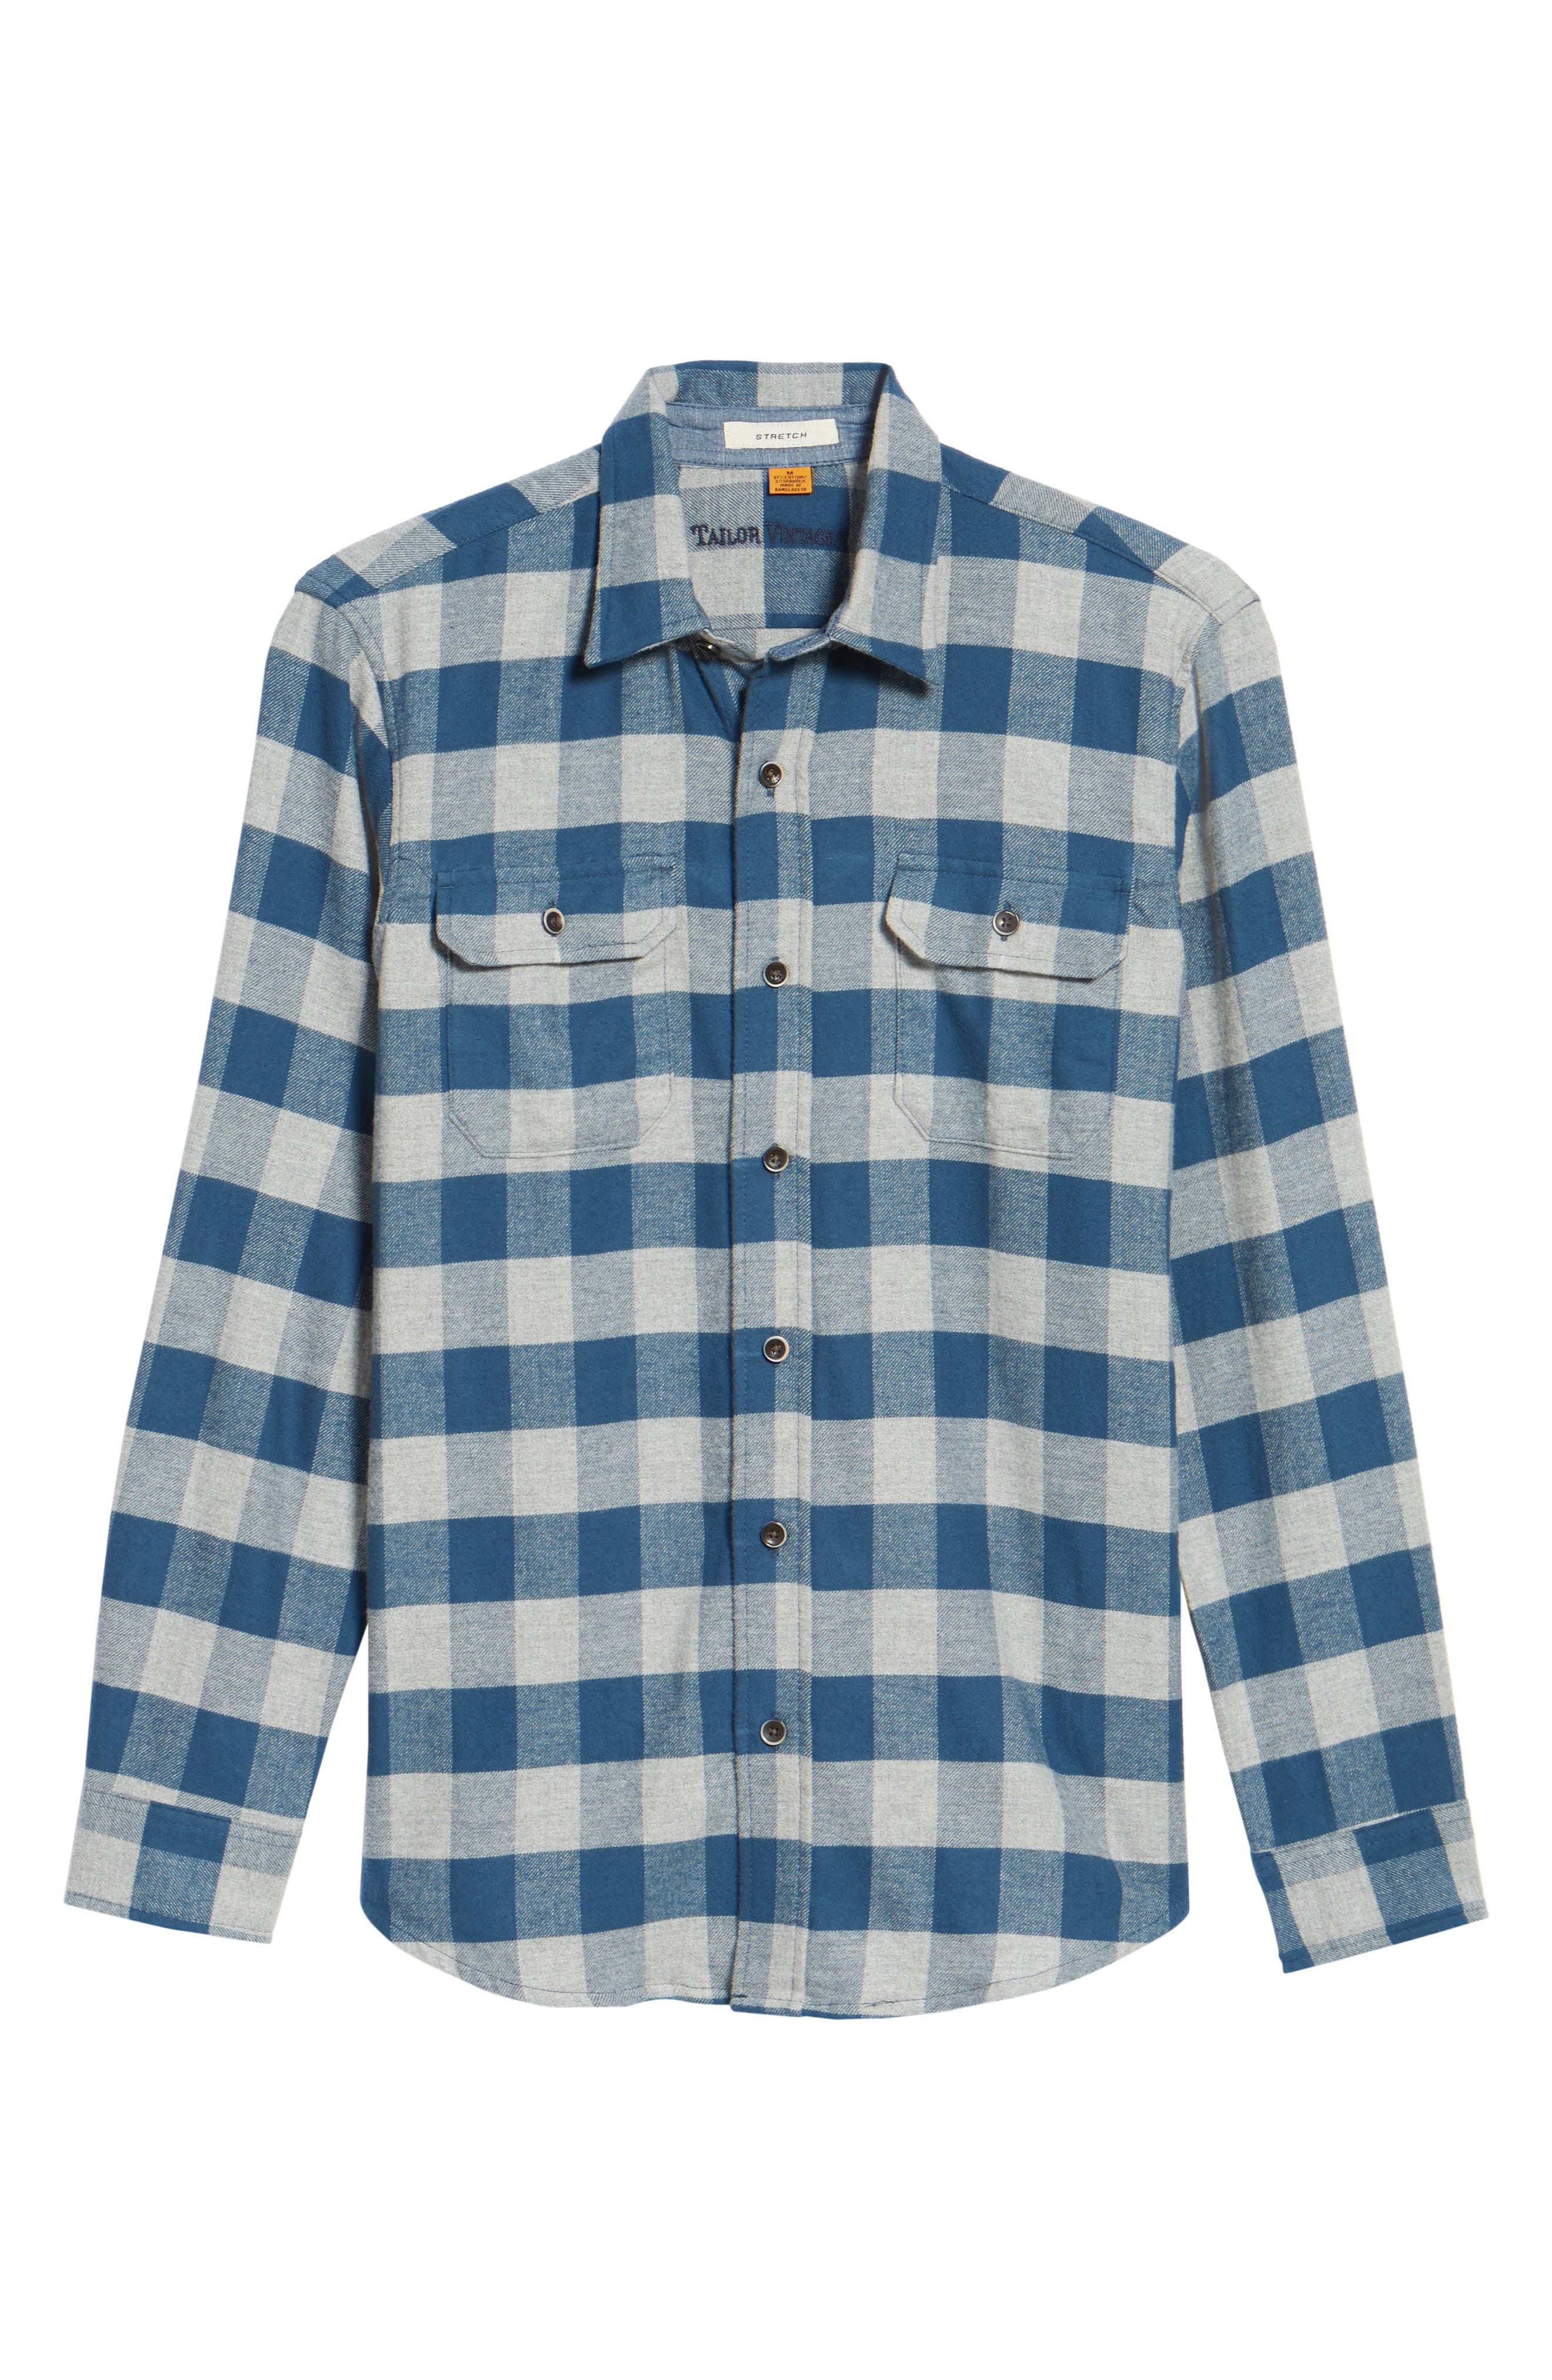 Buffalo Check Flannel Shirt,                             Alternate thumbnail 6, color,                             Teal/ Med Grey Heather